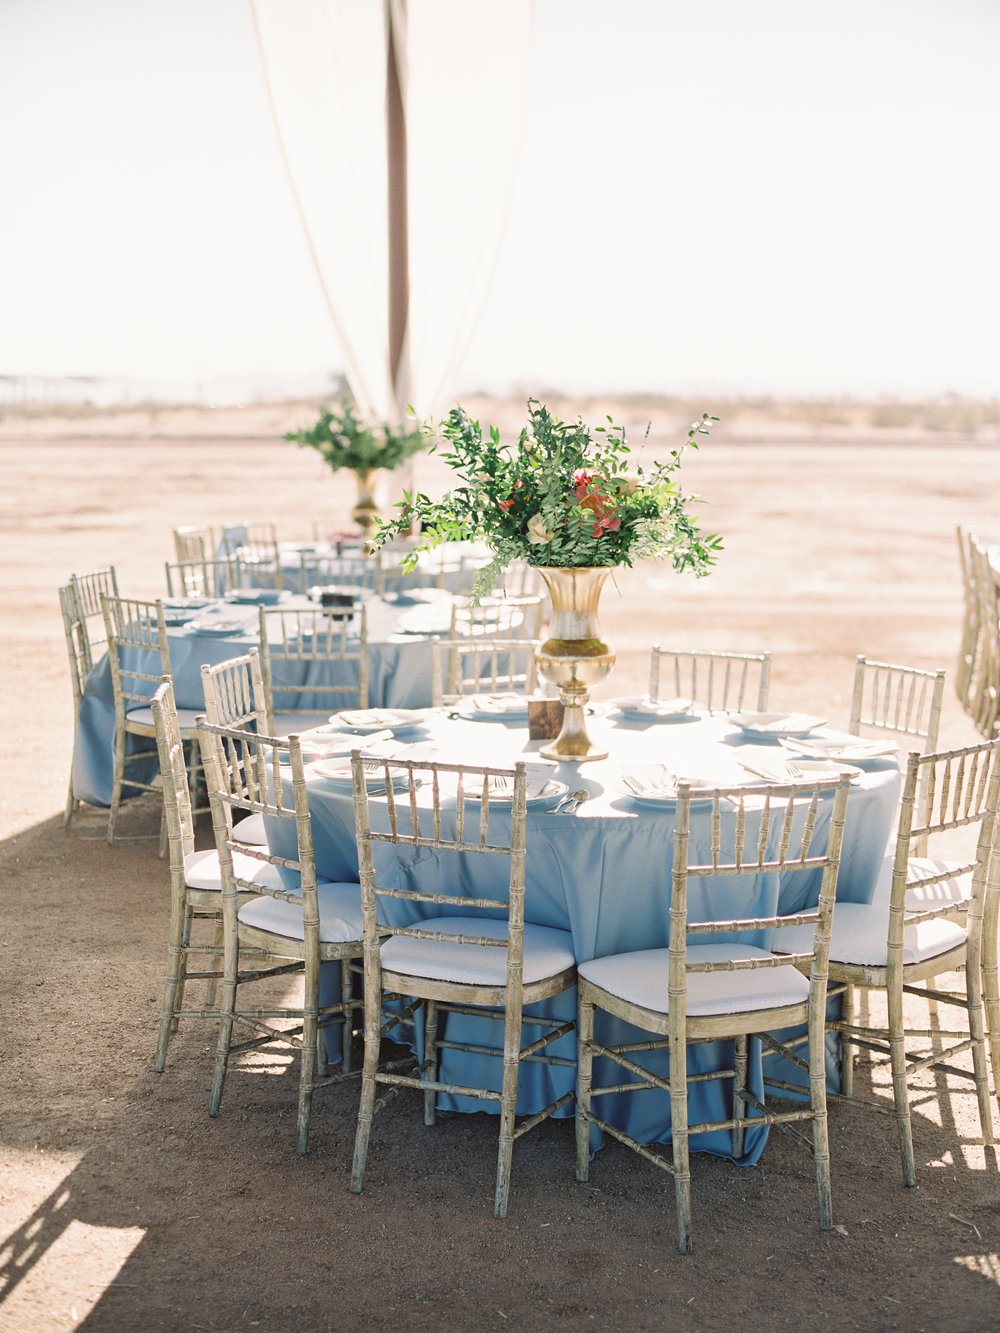 Dairy Farm Wedding - Round Table Reception Inspiration